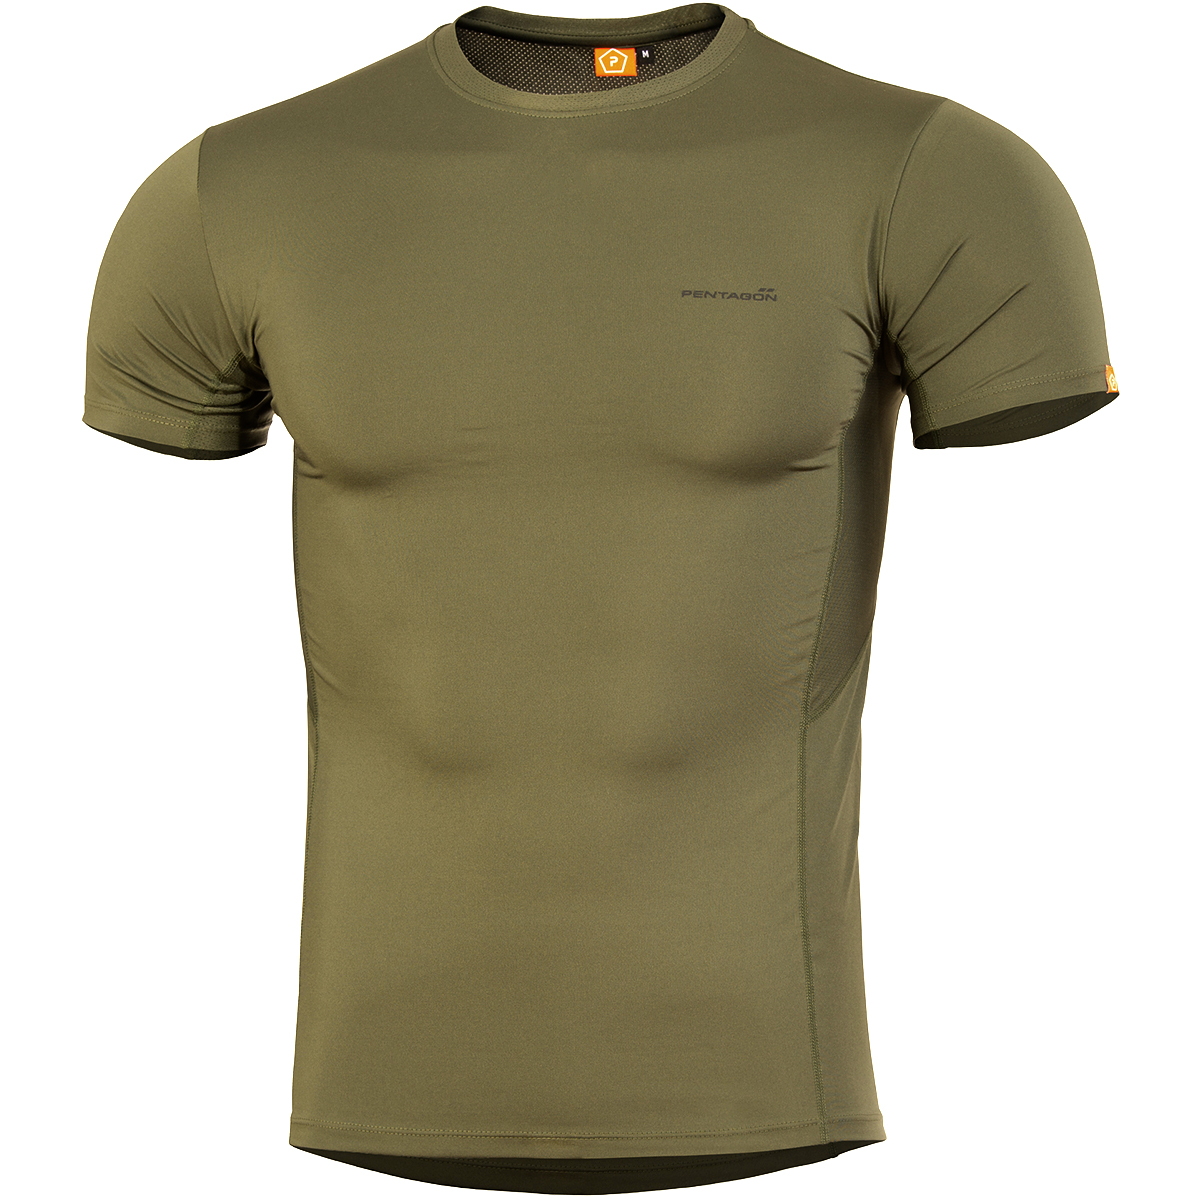 Pentagon Apollo Tac-Fresh T-Shirt Mens Gym Outdoor Workout Quick Dry Top Coyote